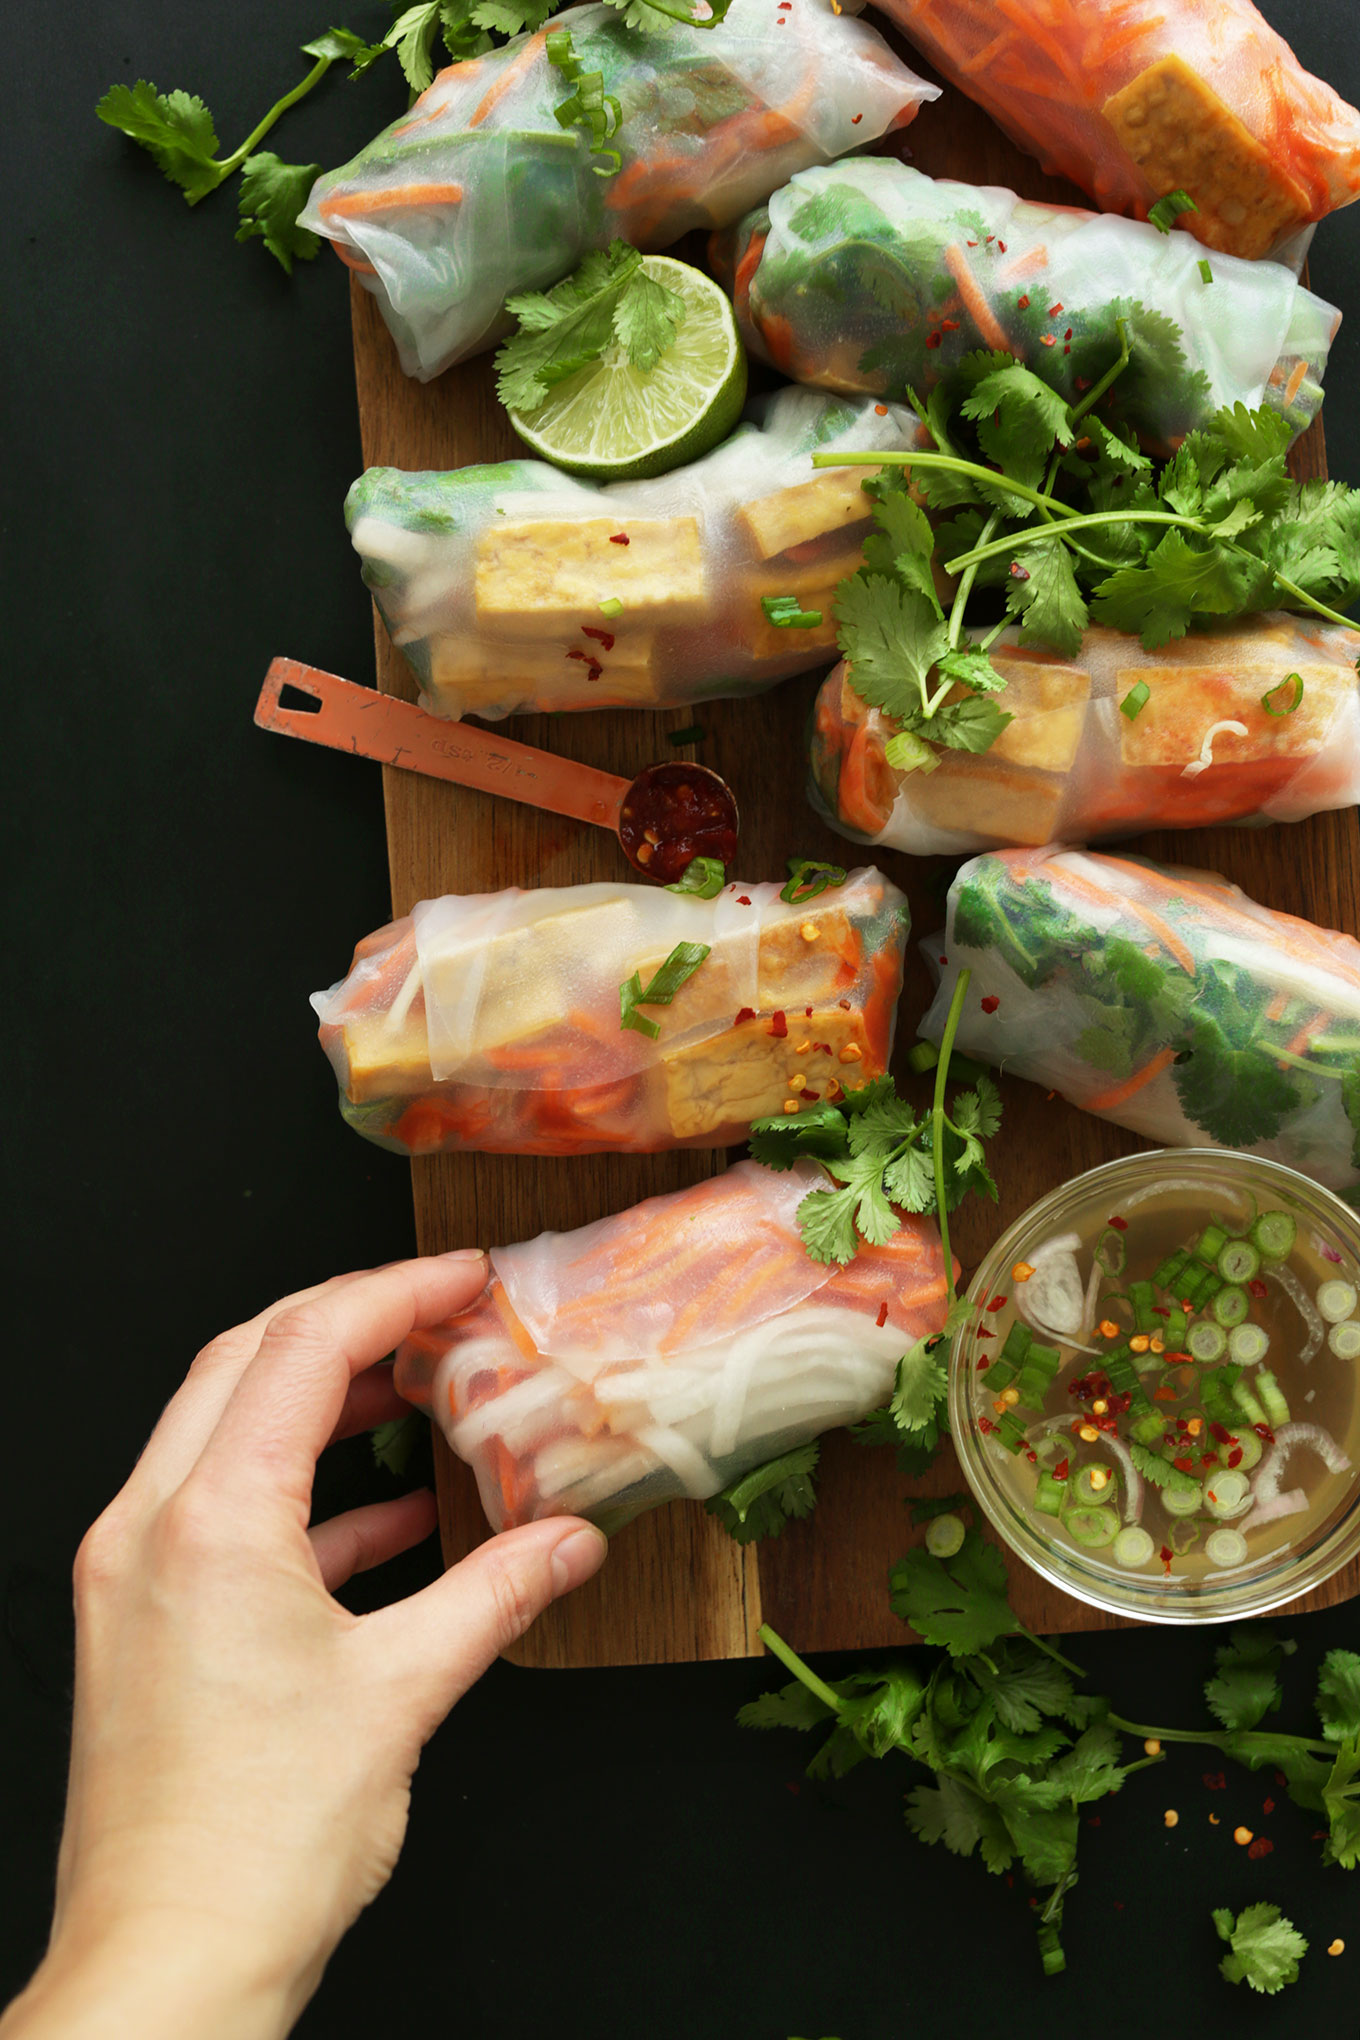 Healthy and fresh vegan Bahn Mi Spring Rolls alongside a bowl of dipping sauce